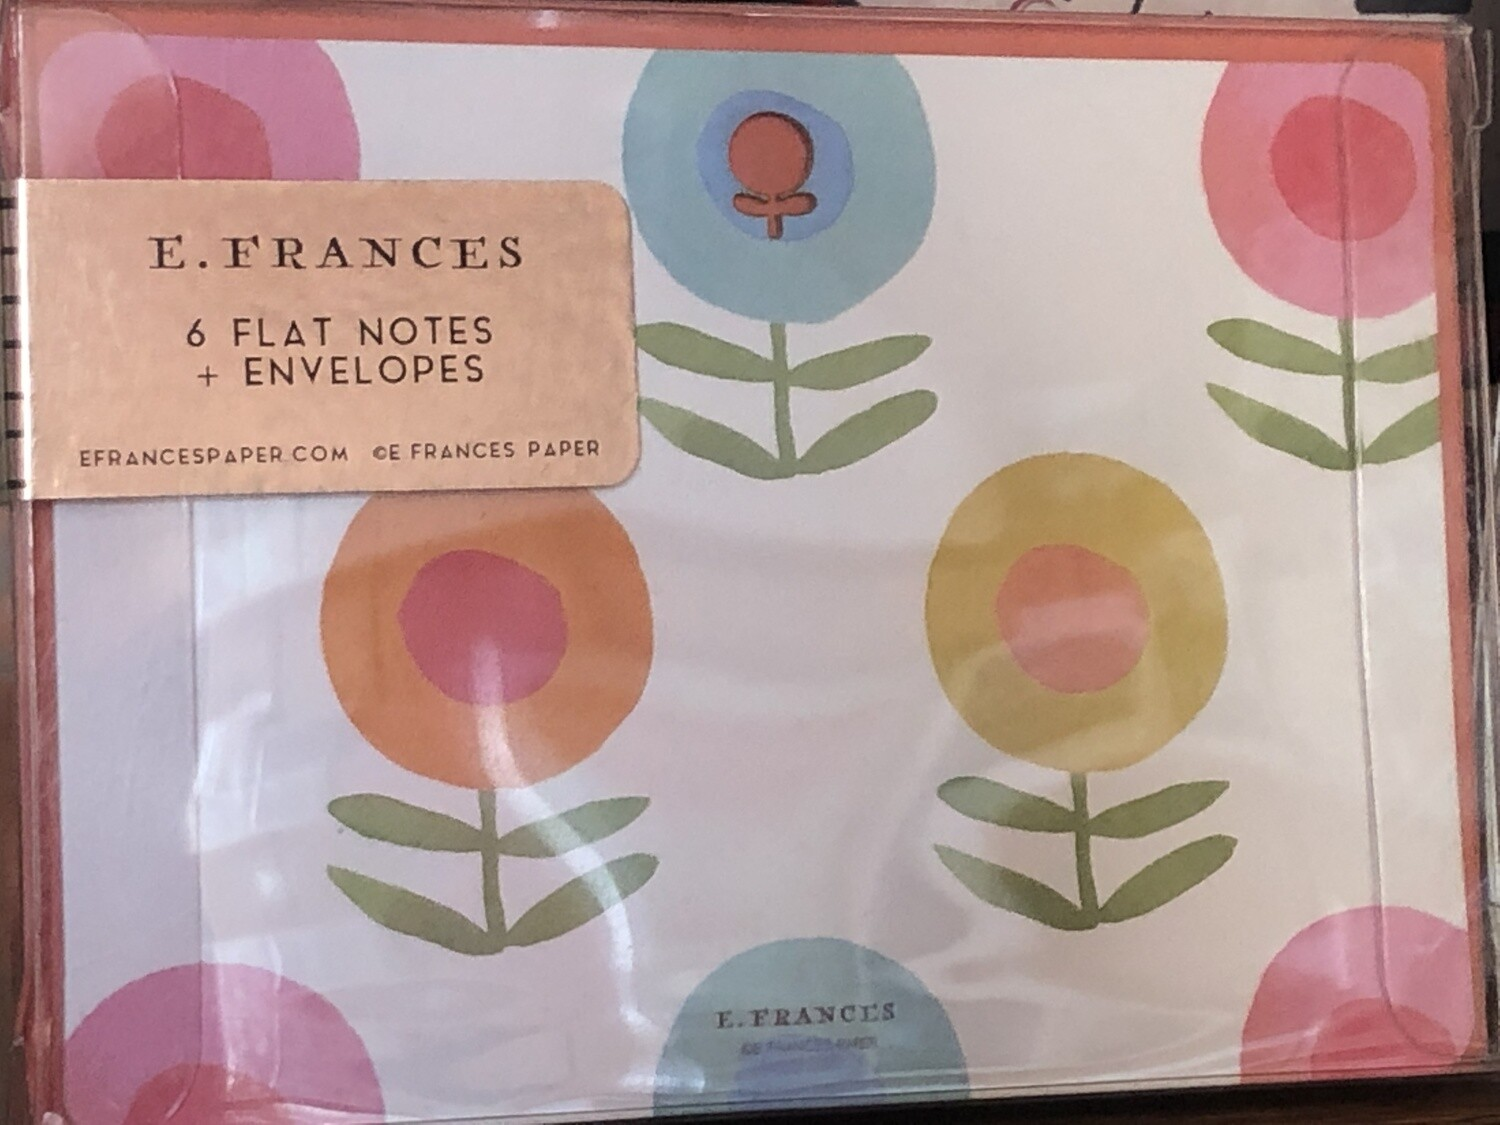 E. Frances boxed cards